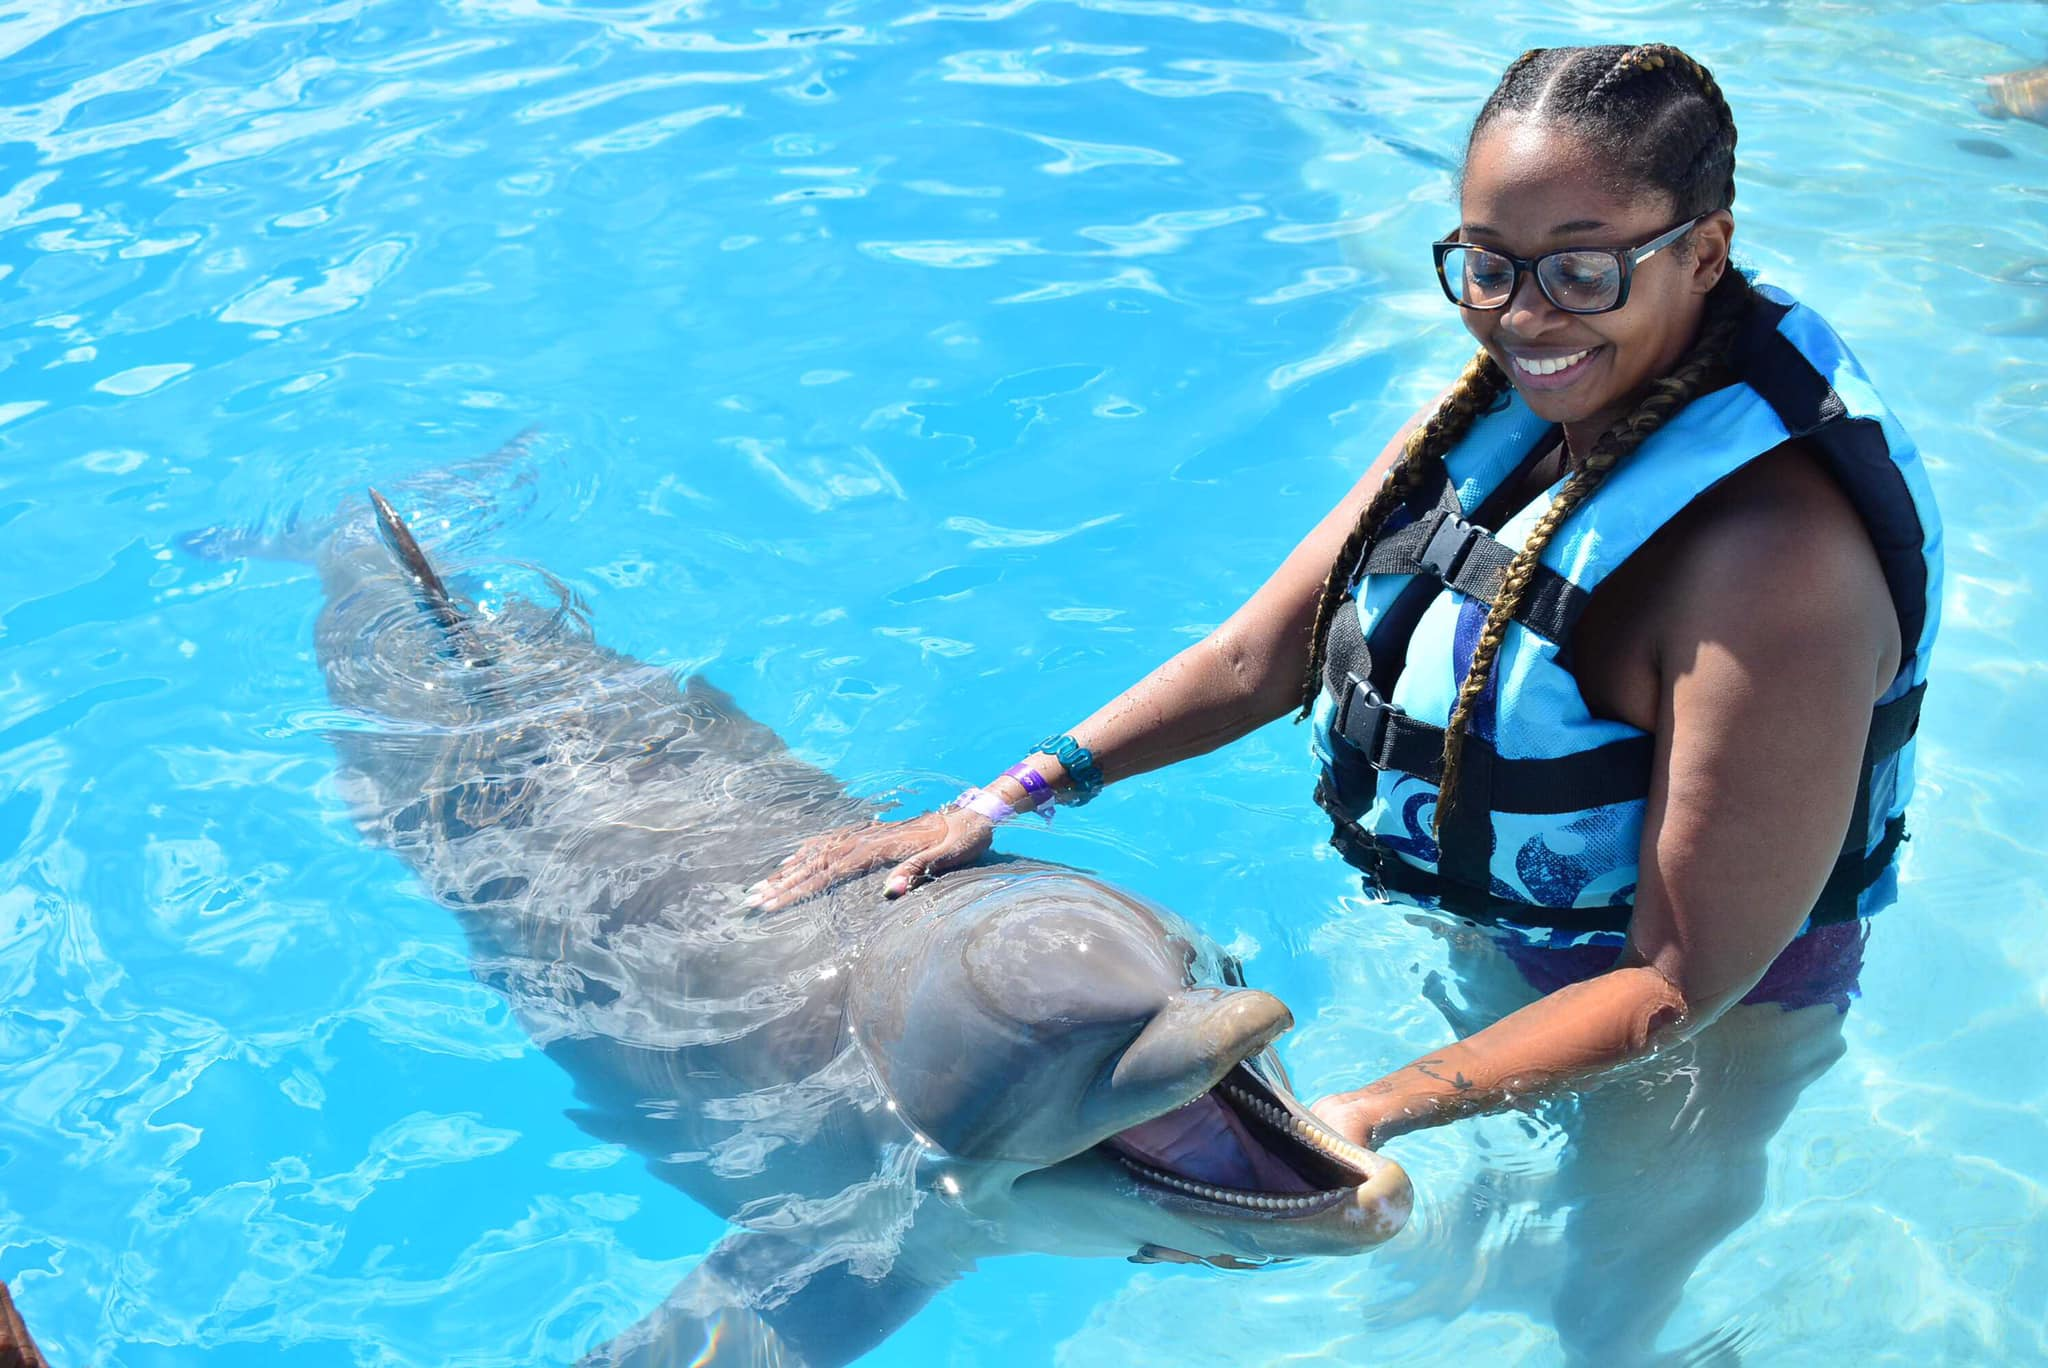 Anna Swimming with the dolphins!